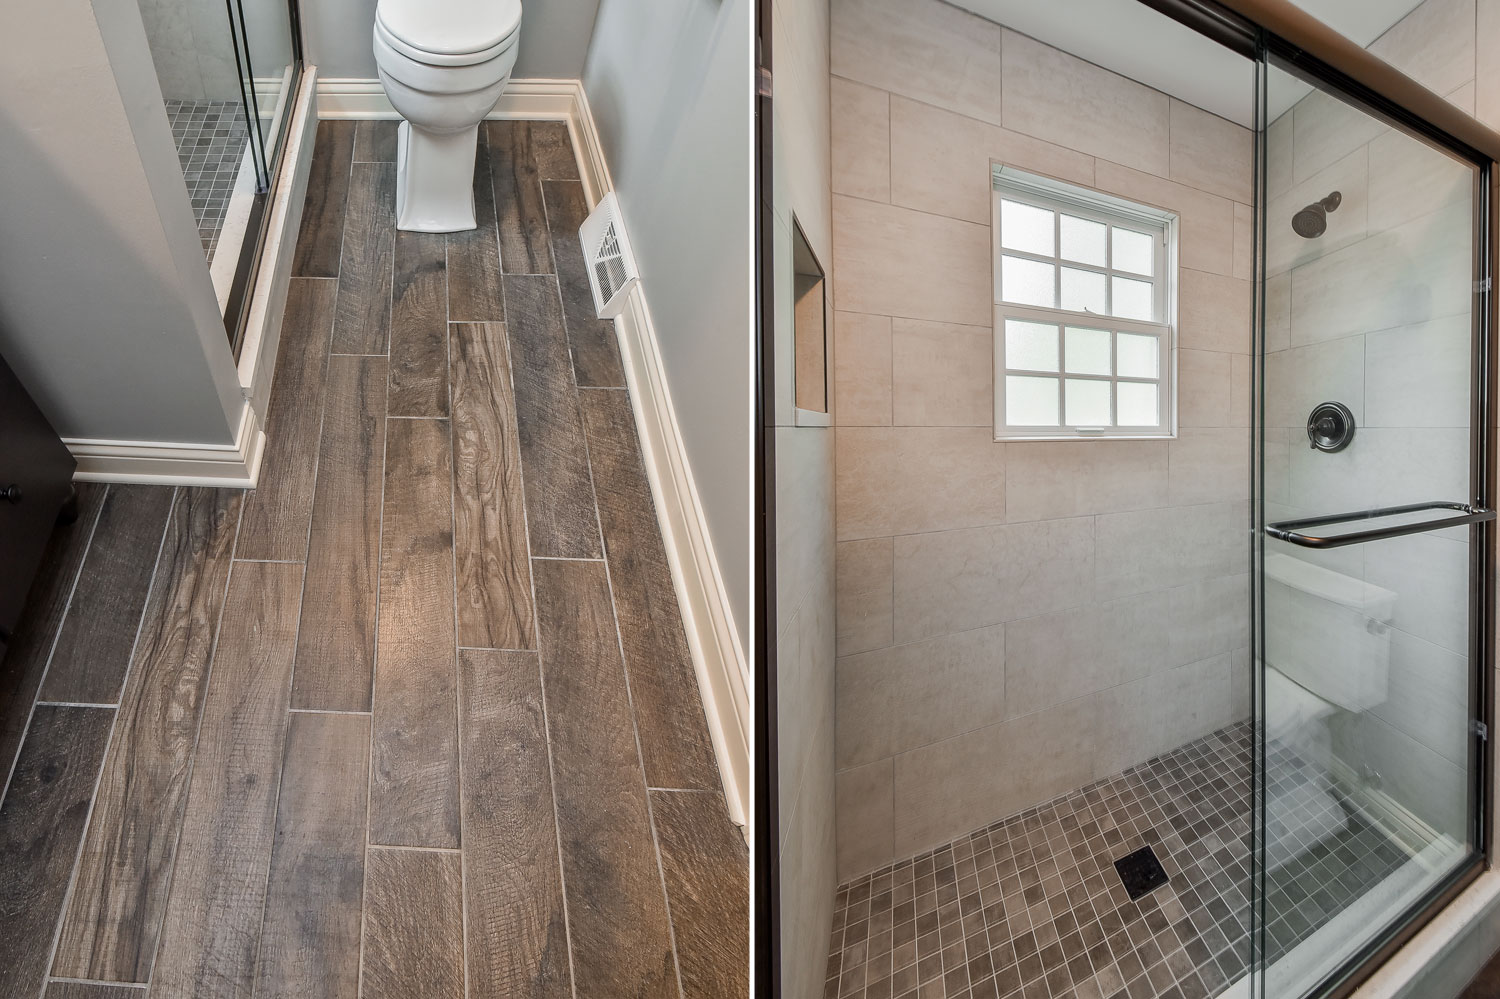 Wheaton Bathroom Remodel Rustic Wood Look Tile - Sebring Design Build